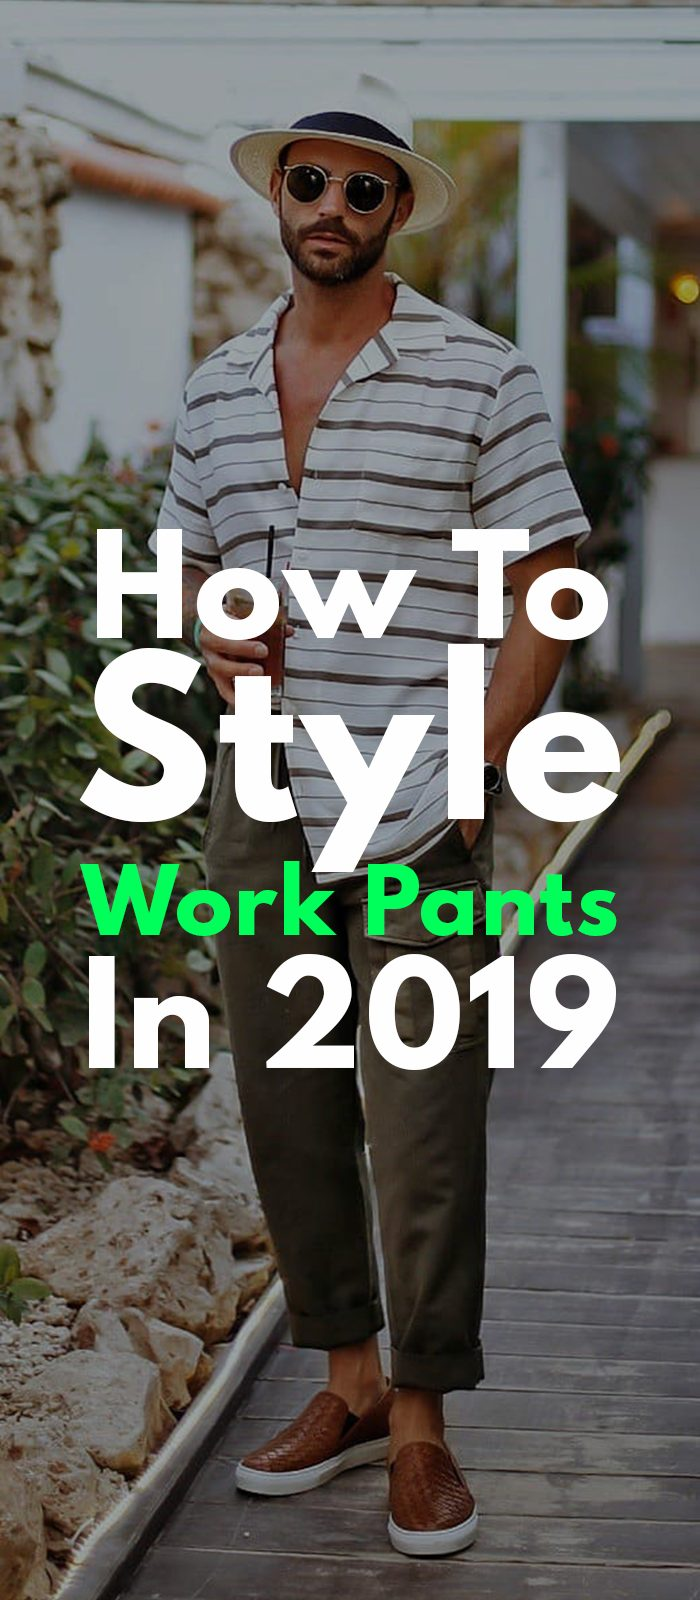 How To Style Work Pants In 2019!